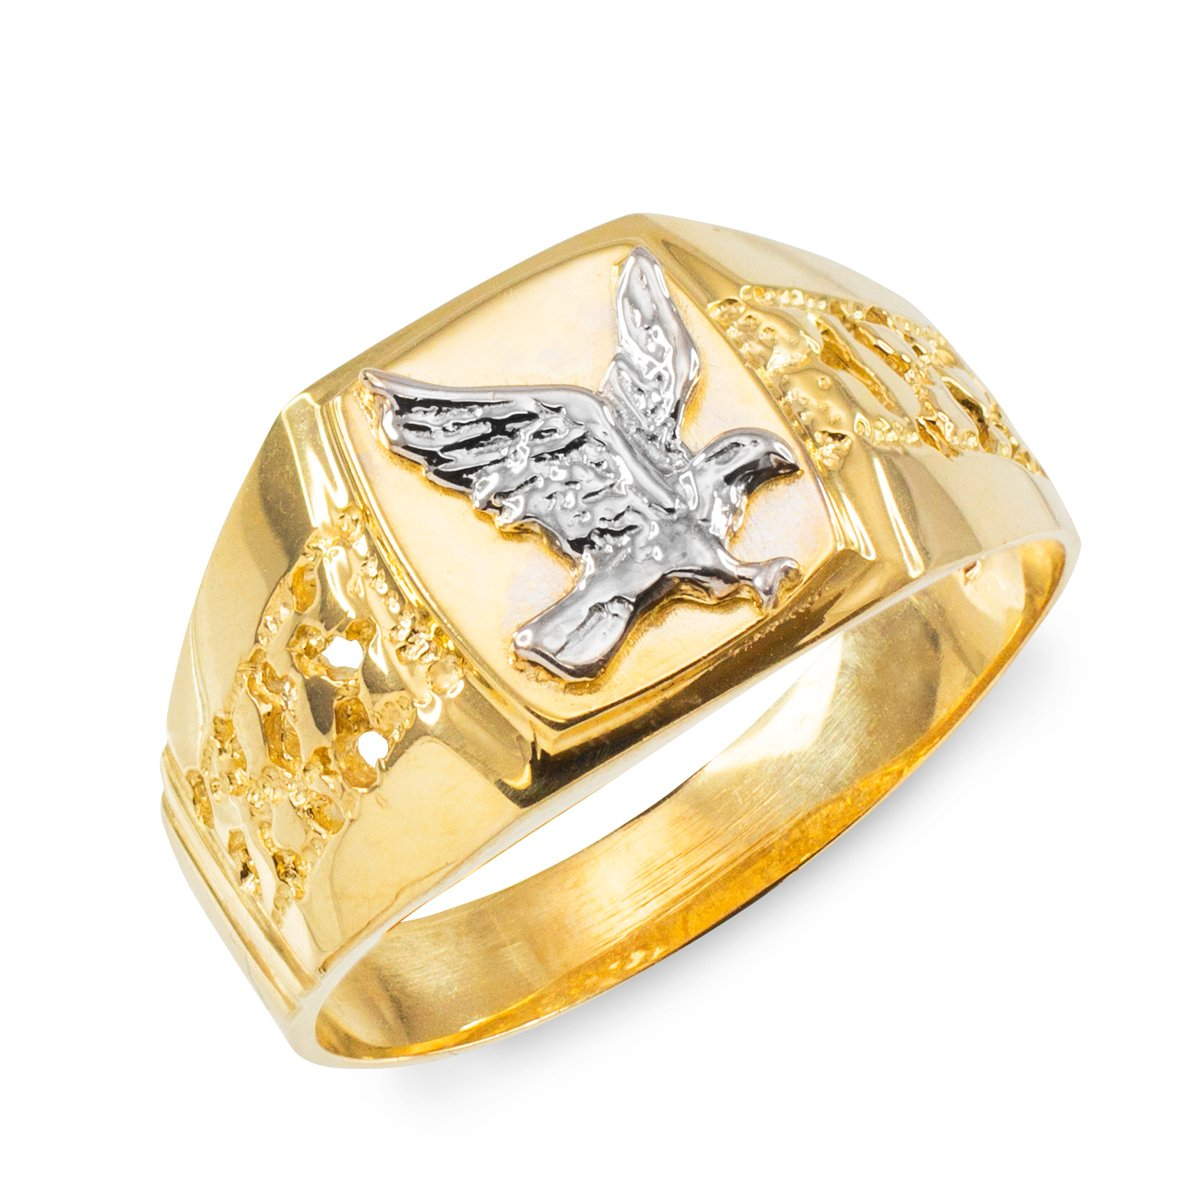 Men's Polished 10k Yellow Gold Open Nugget Band American Eagle Ring (Size 14)